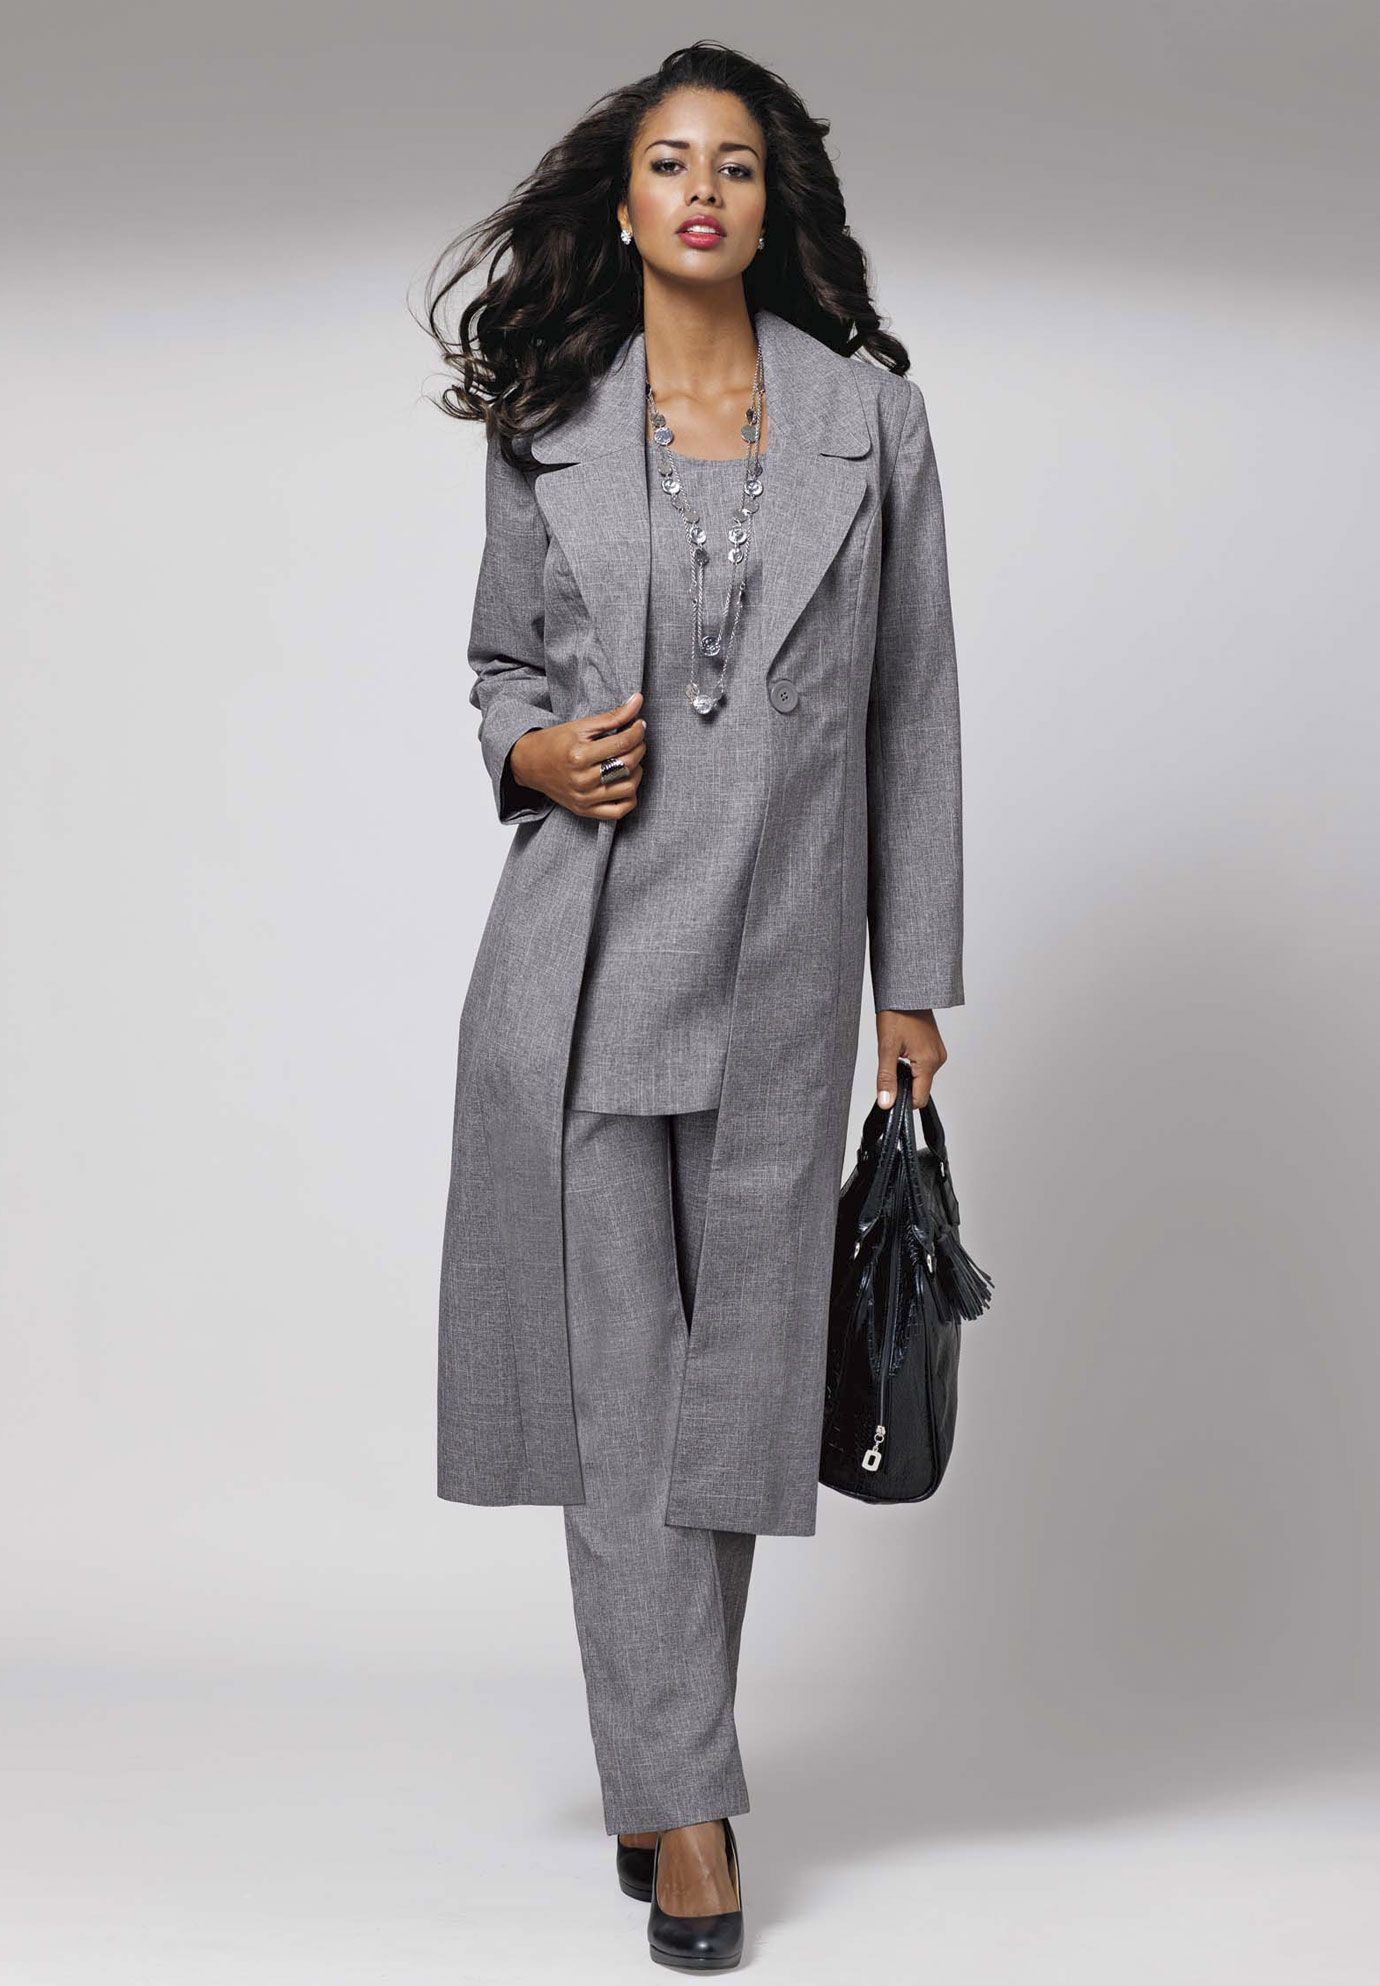 Plus Size Clothing: Suits and Jacket Dresses for Women ...